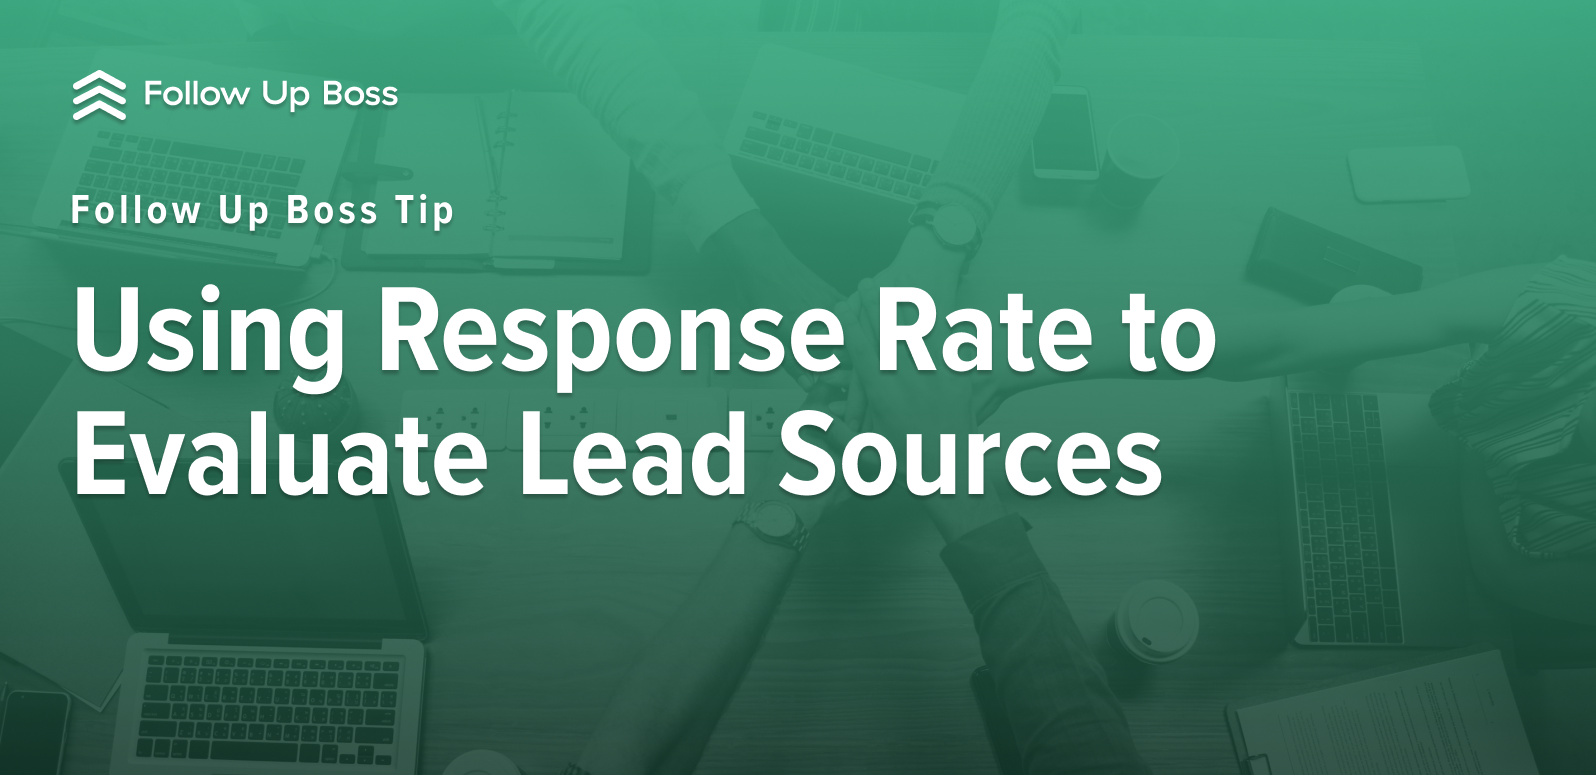 Follow Up Boss Tip: Using Response Rate to Evaluate Lead Sources